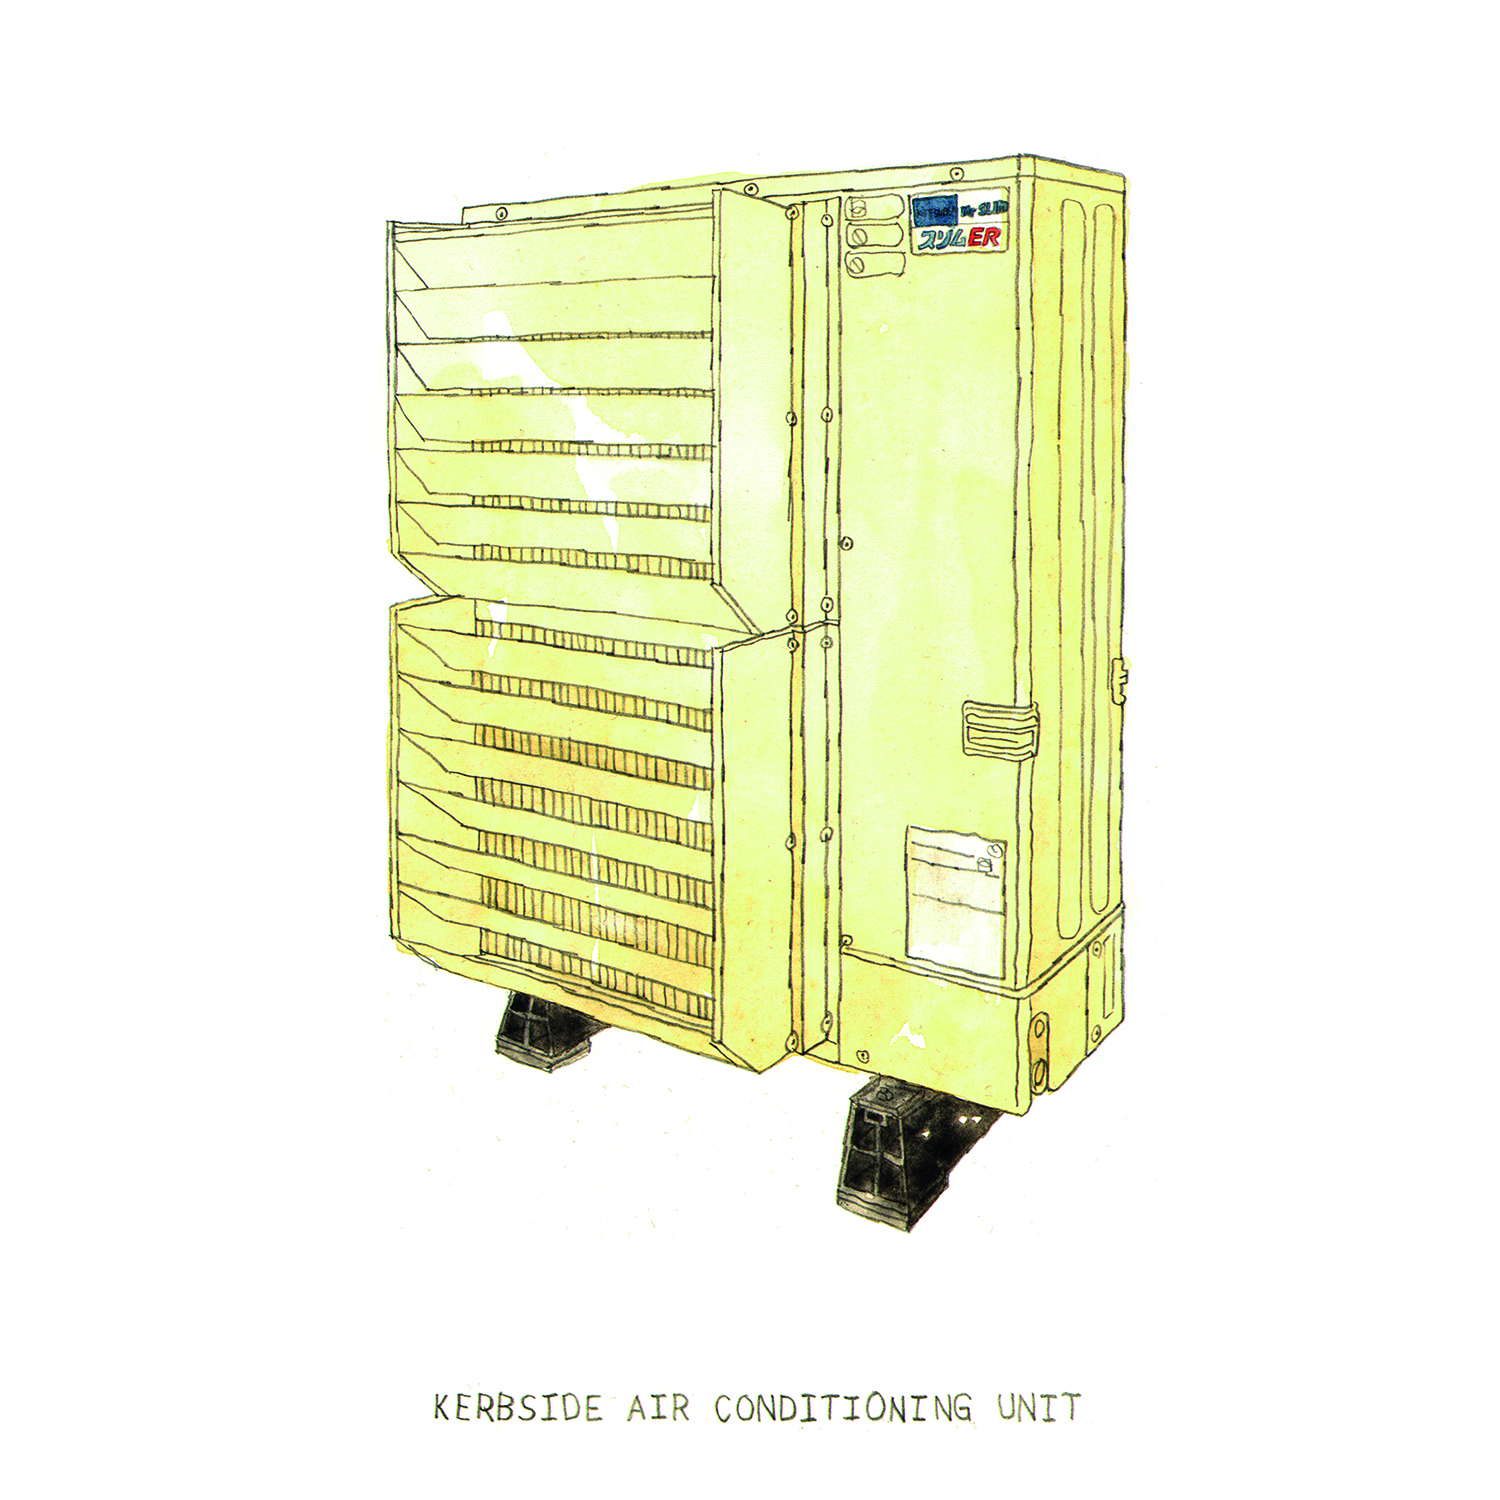 japan air conditioner illustration.jpg